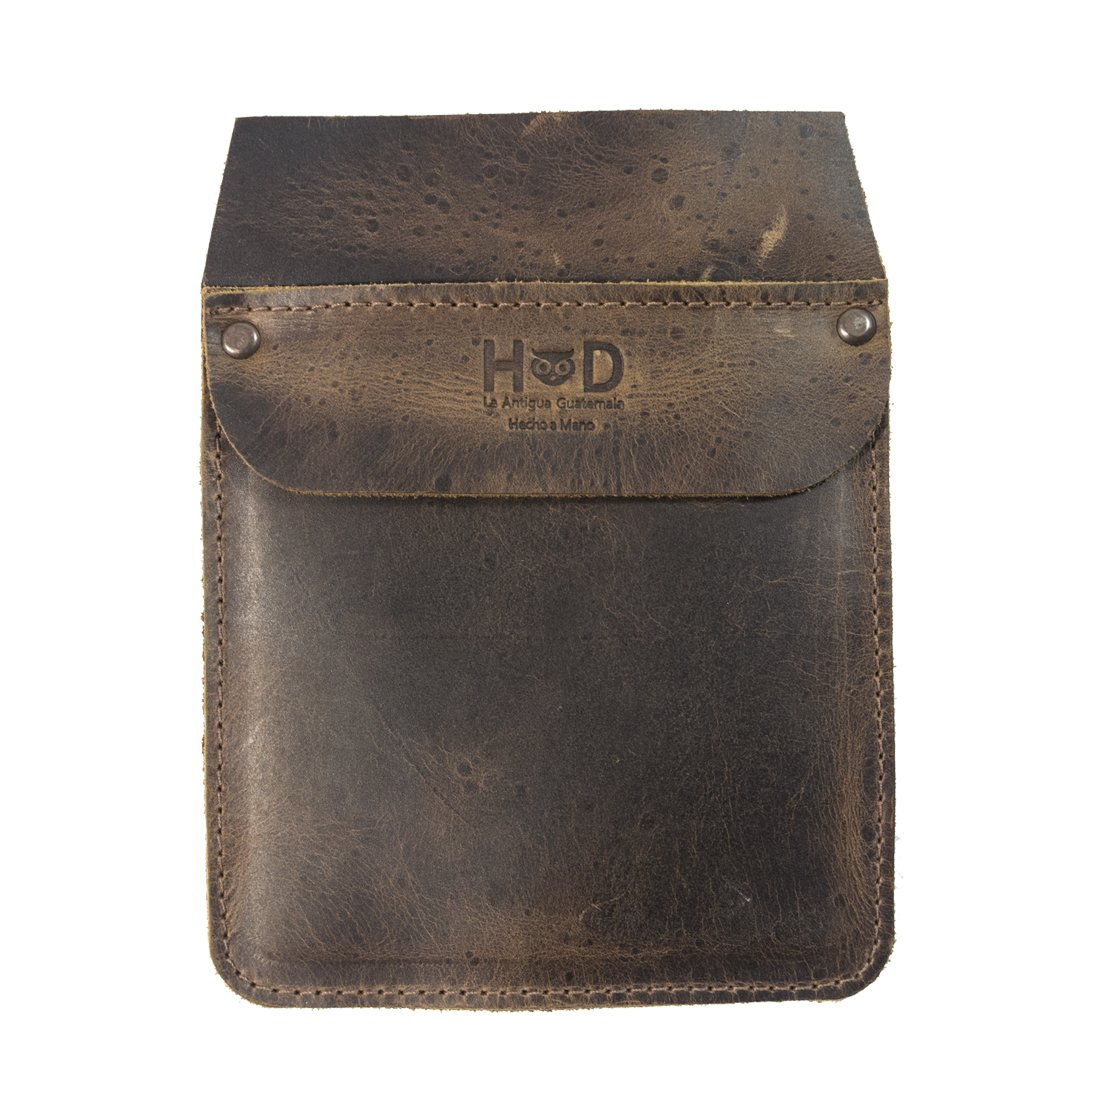 Durable Leather Work Pocket Organizer for Tools/Pens, Office & Work Essentials Handmade by Hide & Drink :: Bourbon Brown by Hide & Drink (Image #2)